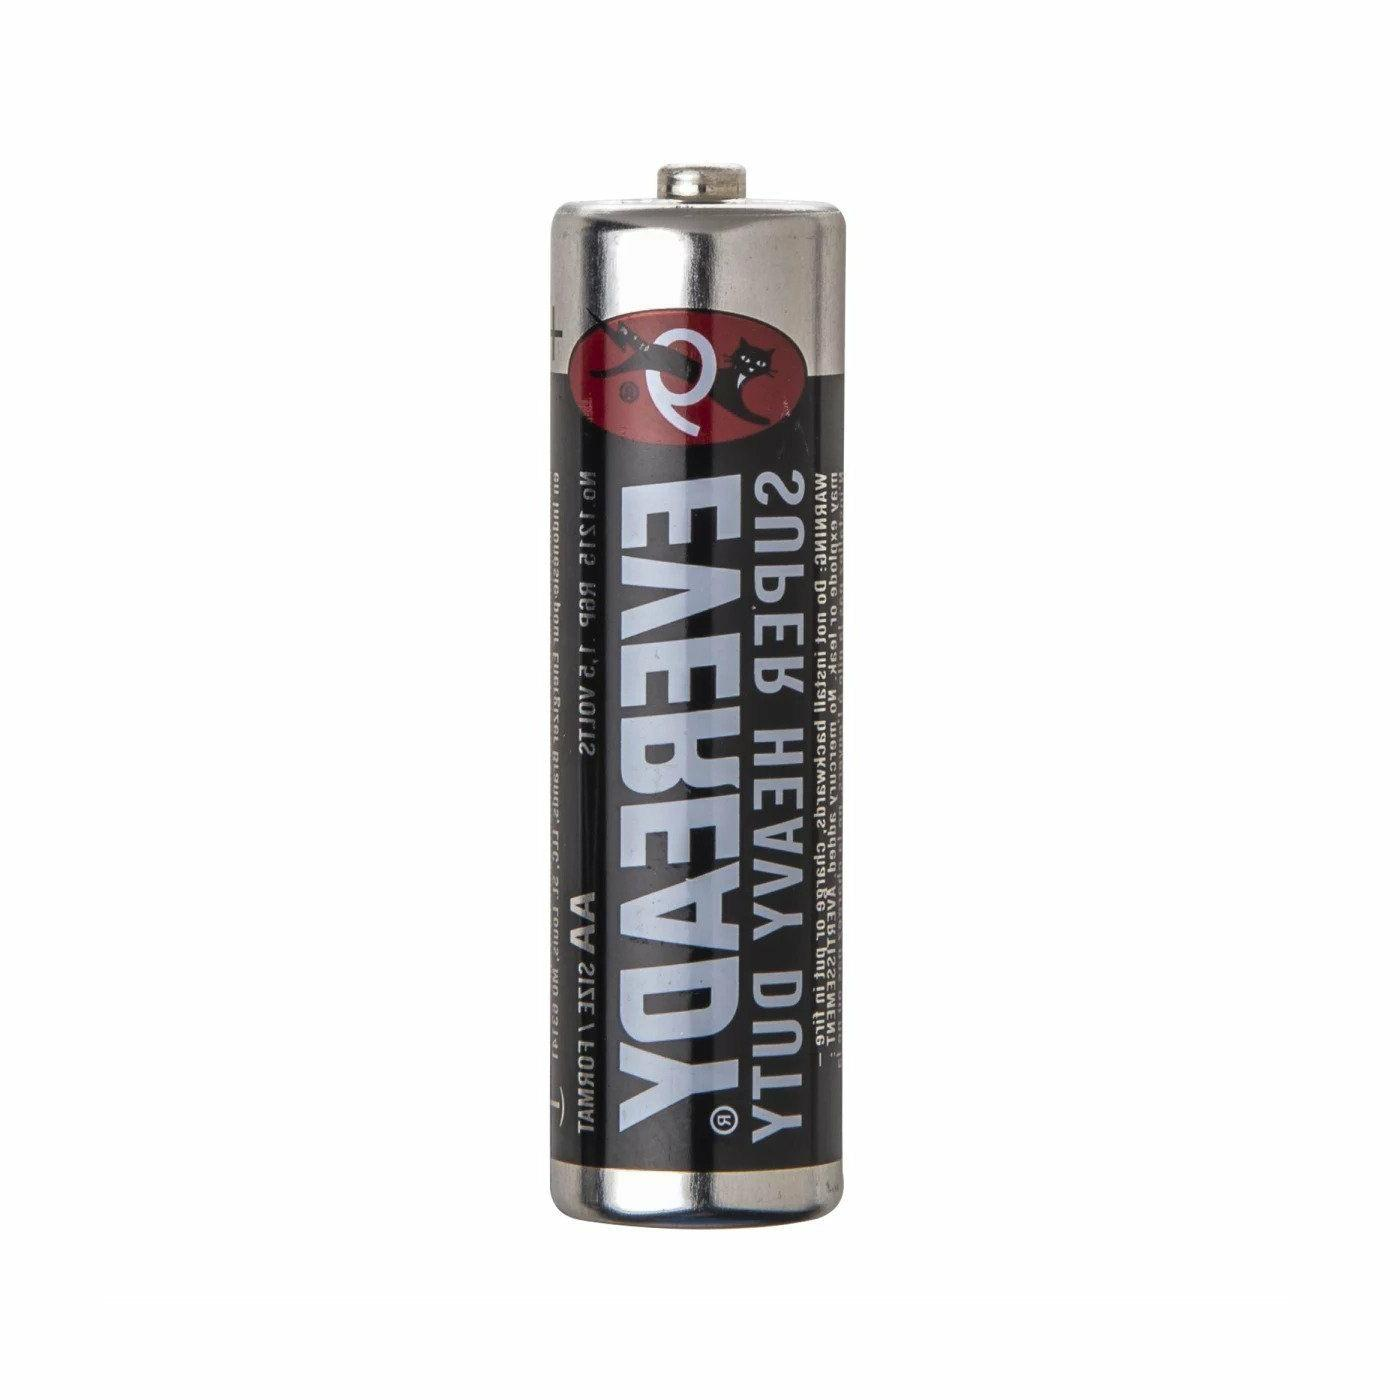 24 Energizer Eveready Super Industrial AA Batteries